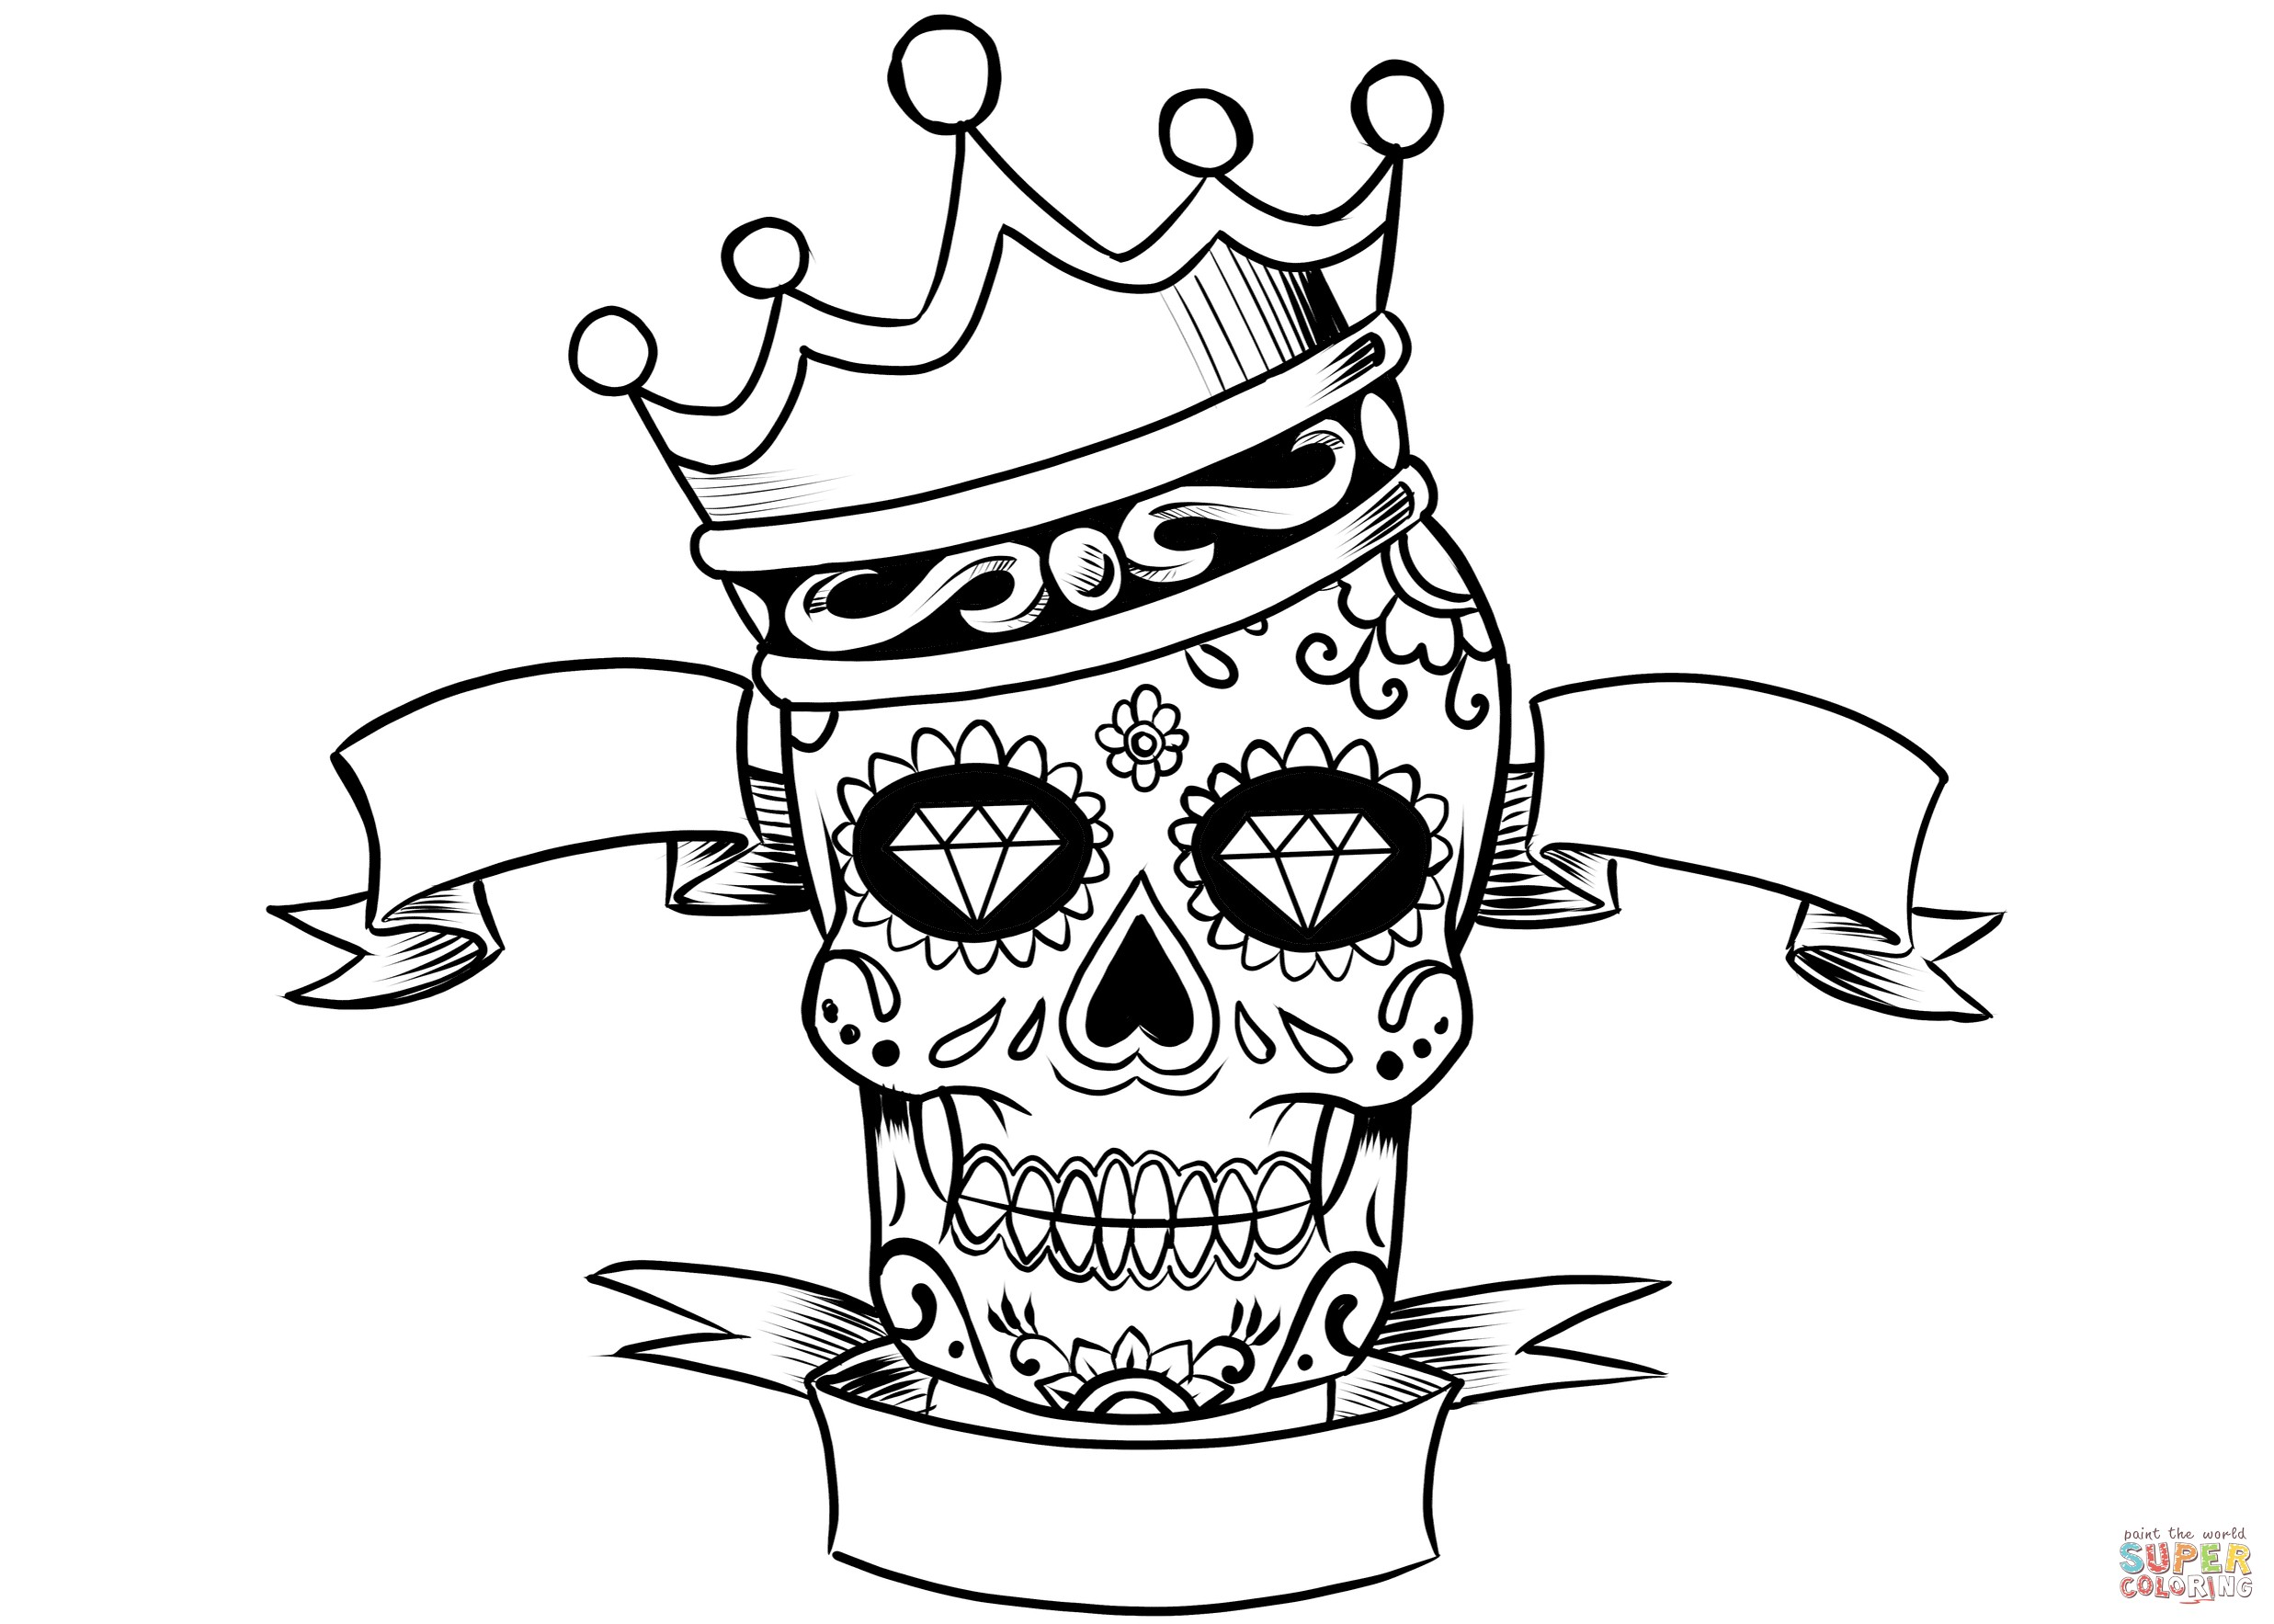 King Crown Drawing at GetDrawings.com | Free for personal use King ...